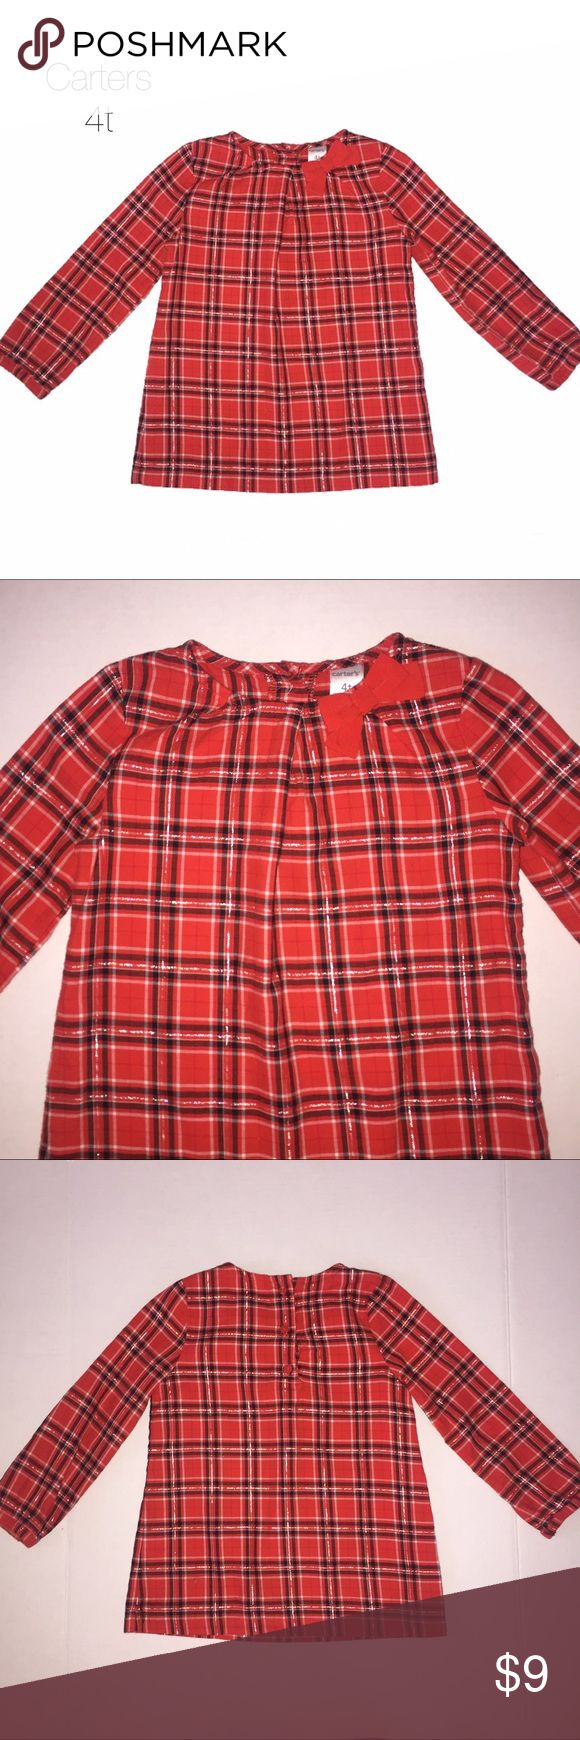 Carters Red Plaid Tunic Long Sleeve Blouse 4T Gently worn Carters Red Plaid Tunic Long Sleeve Blouse 4T small hole on back has been repaired Carter's Shirts & Tops Blouses